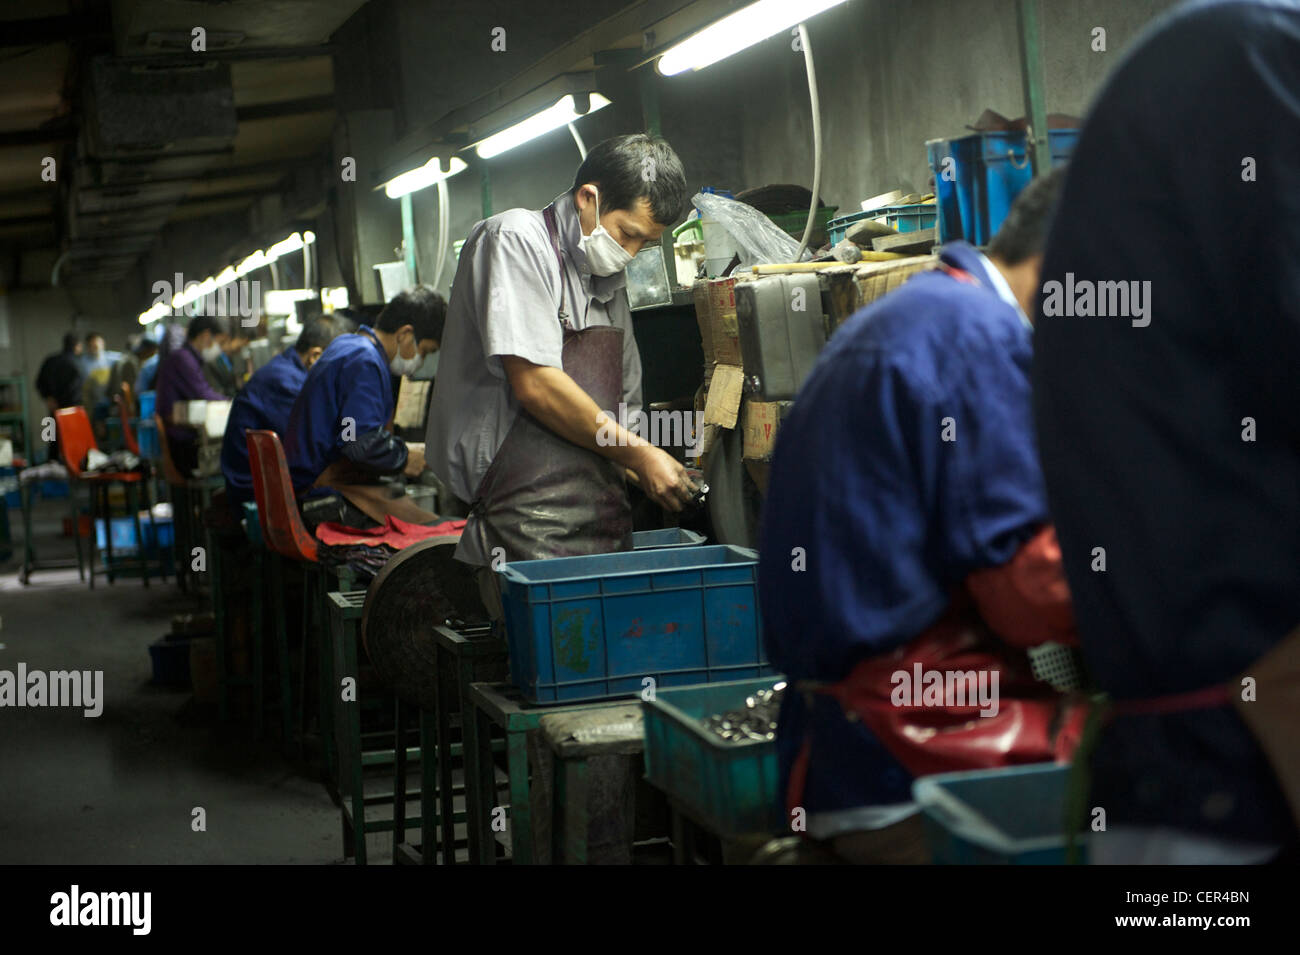 A cigarette lighters factory in Wenzhou, Zhejiang province, China. 09-Nov-2011 - Stock Image